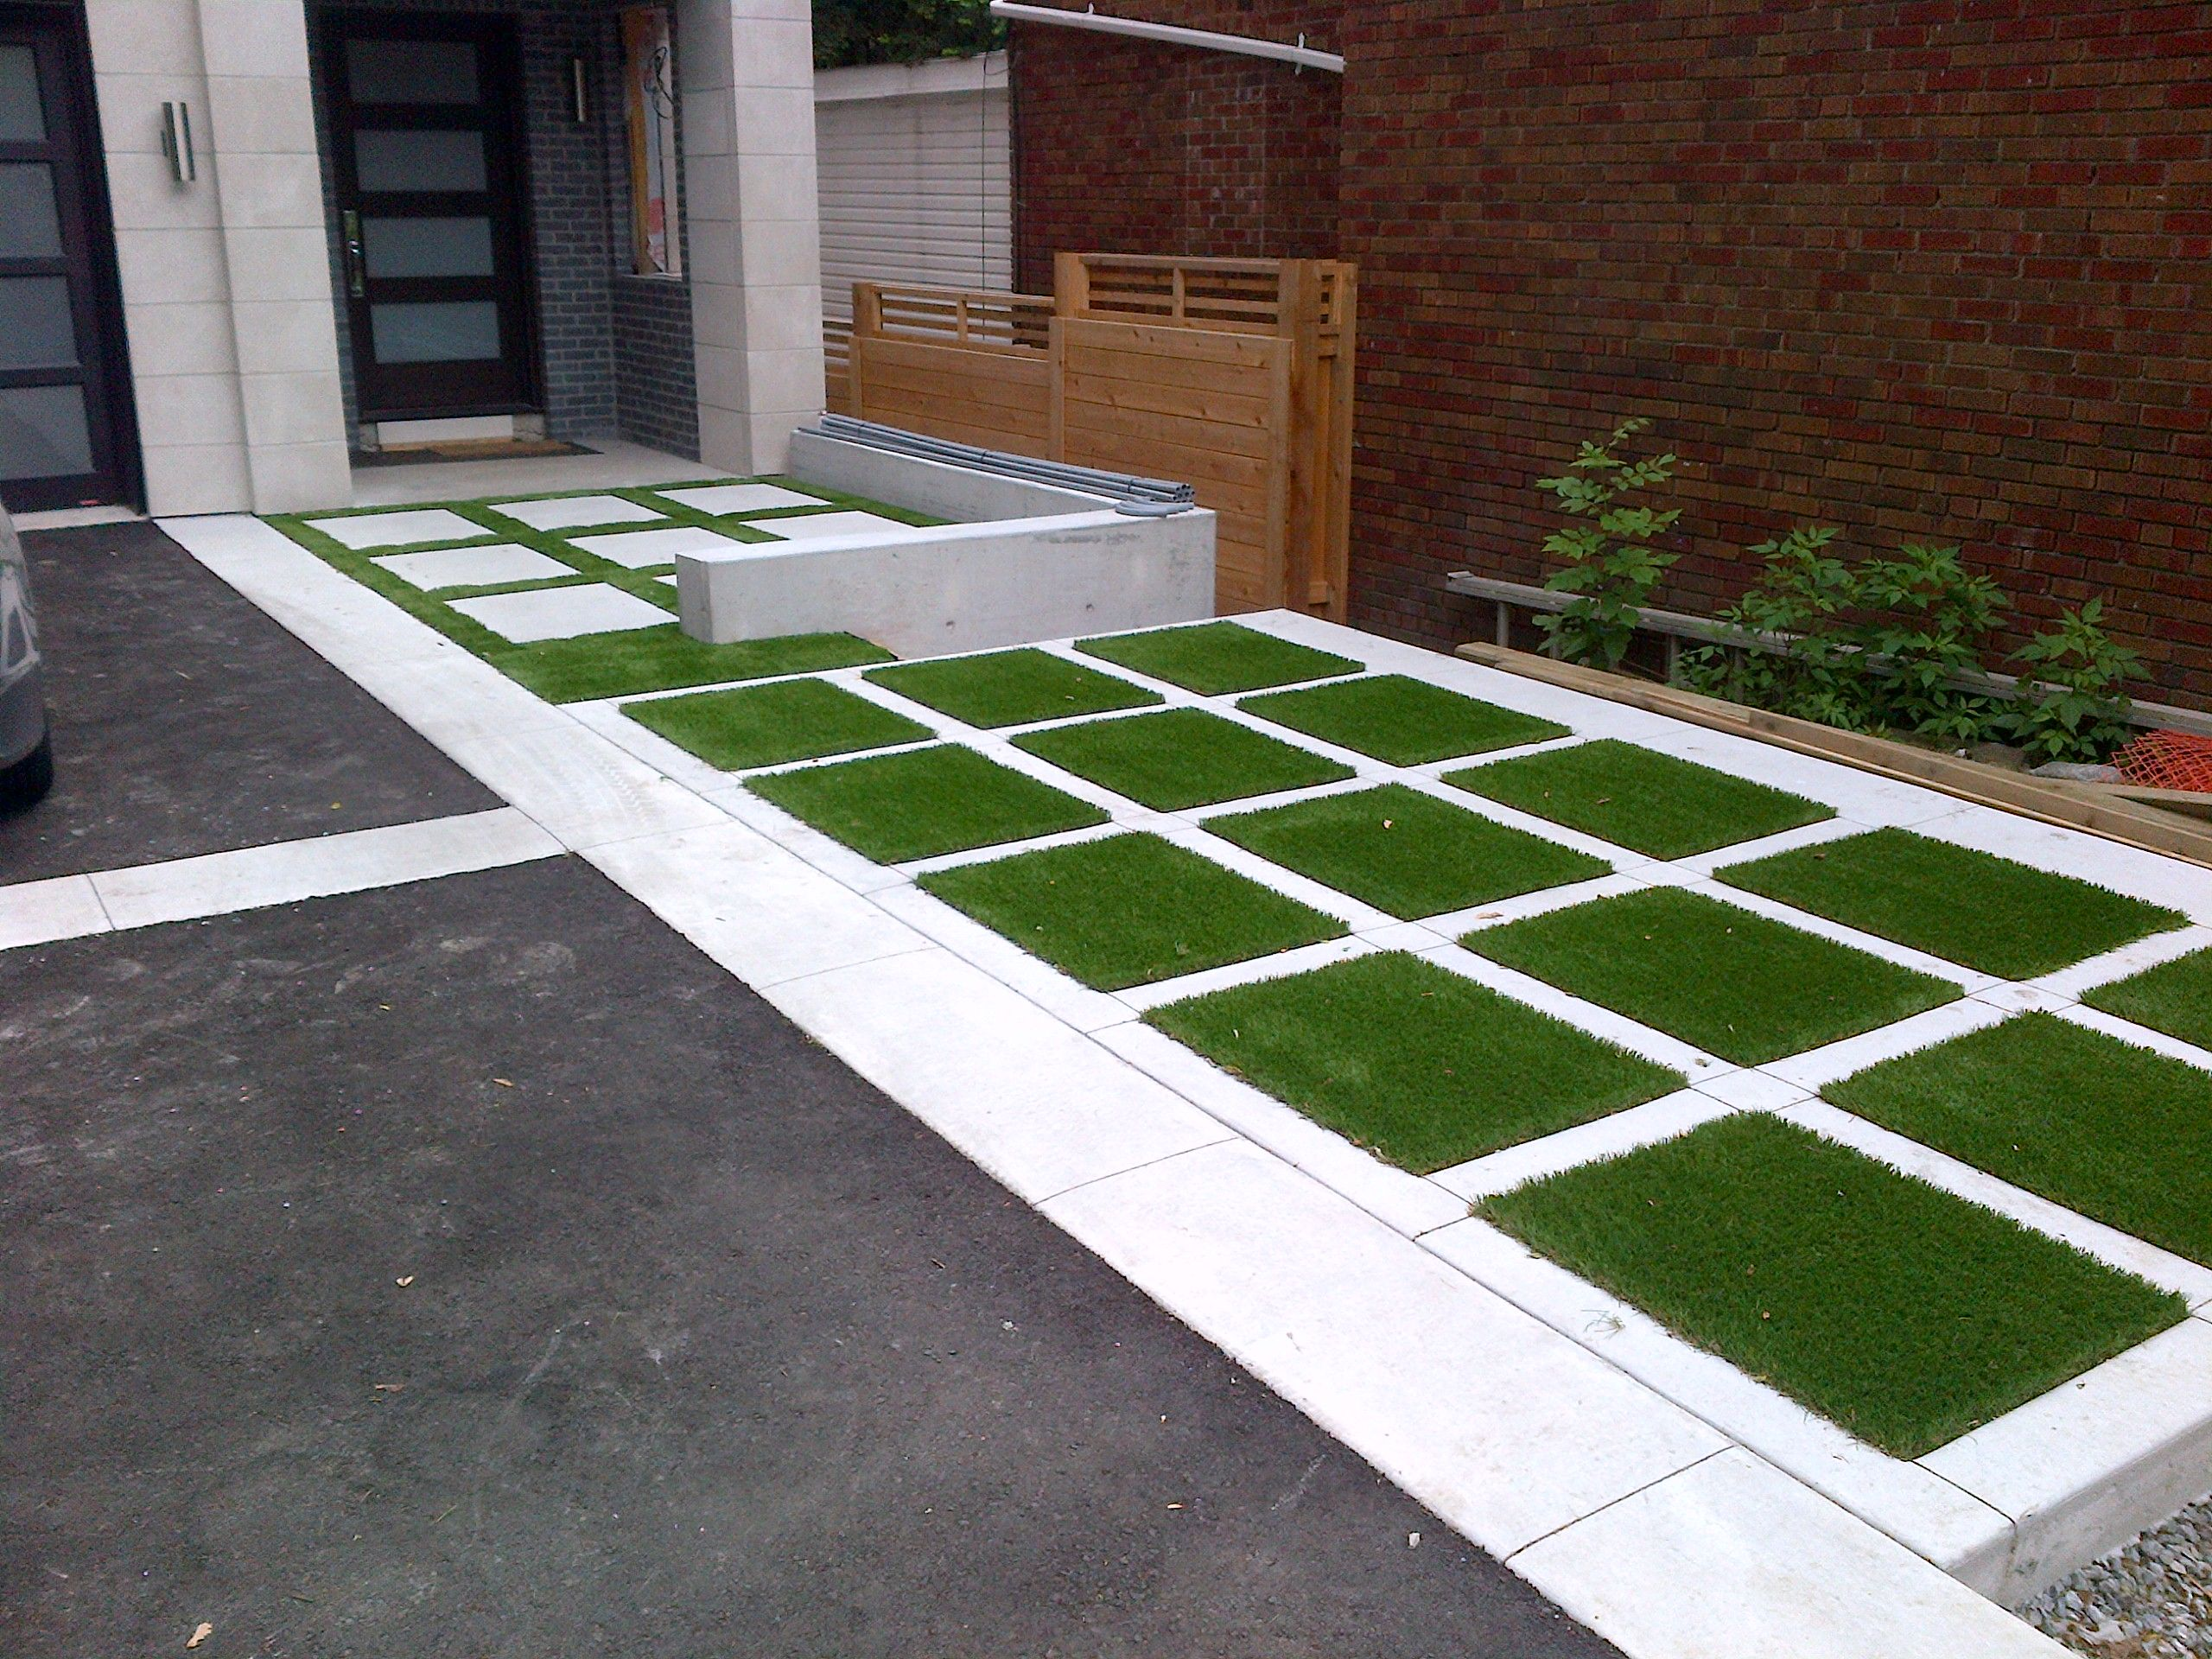 Pin By Franciele Nogueira On Area Externa Grasses Landscaping Permeable Paving Artificial Grass